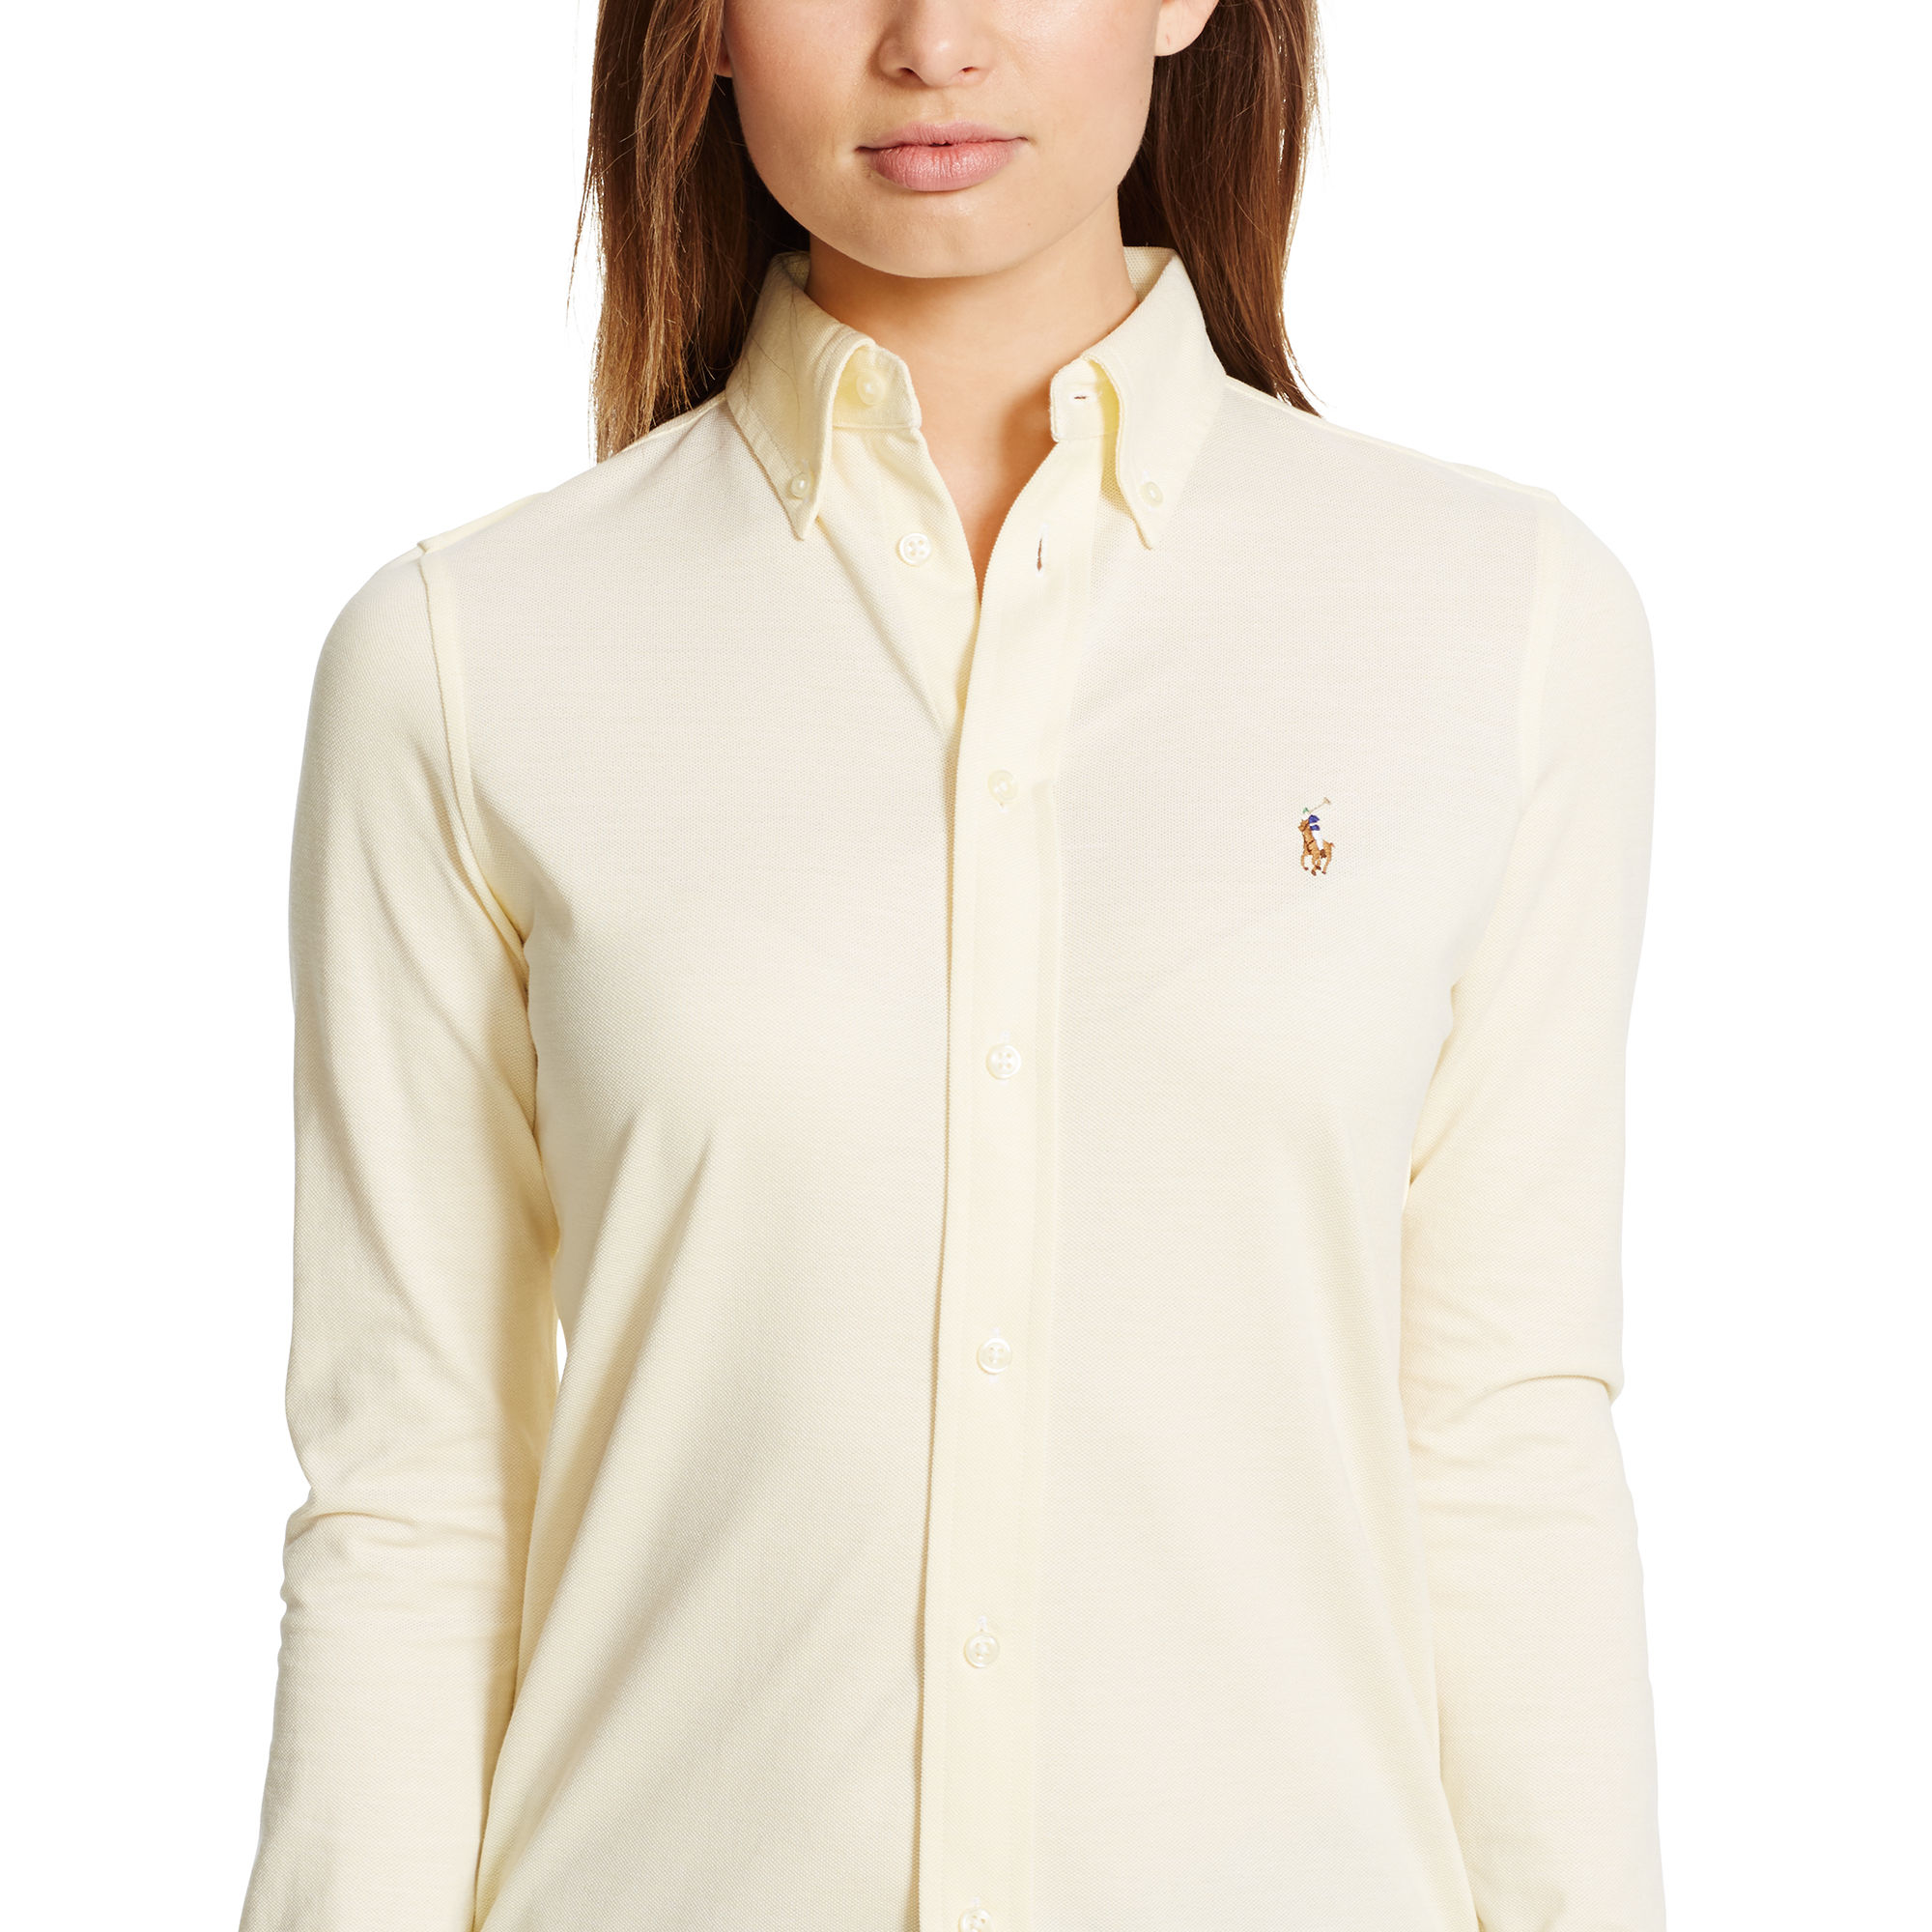 Find great deals on eBay for polo ralph lauren oxford shirt women. Shop with confidence.